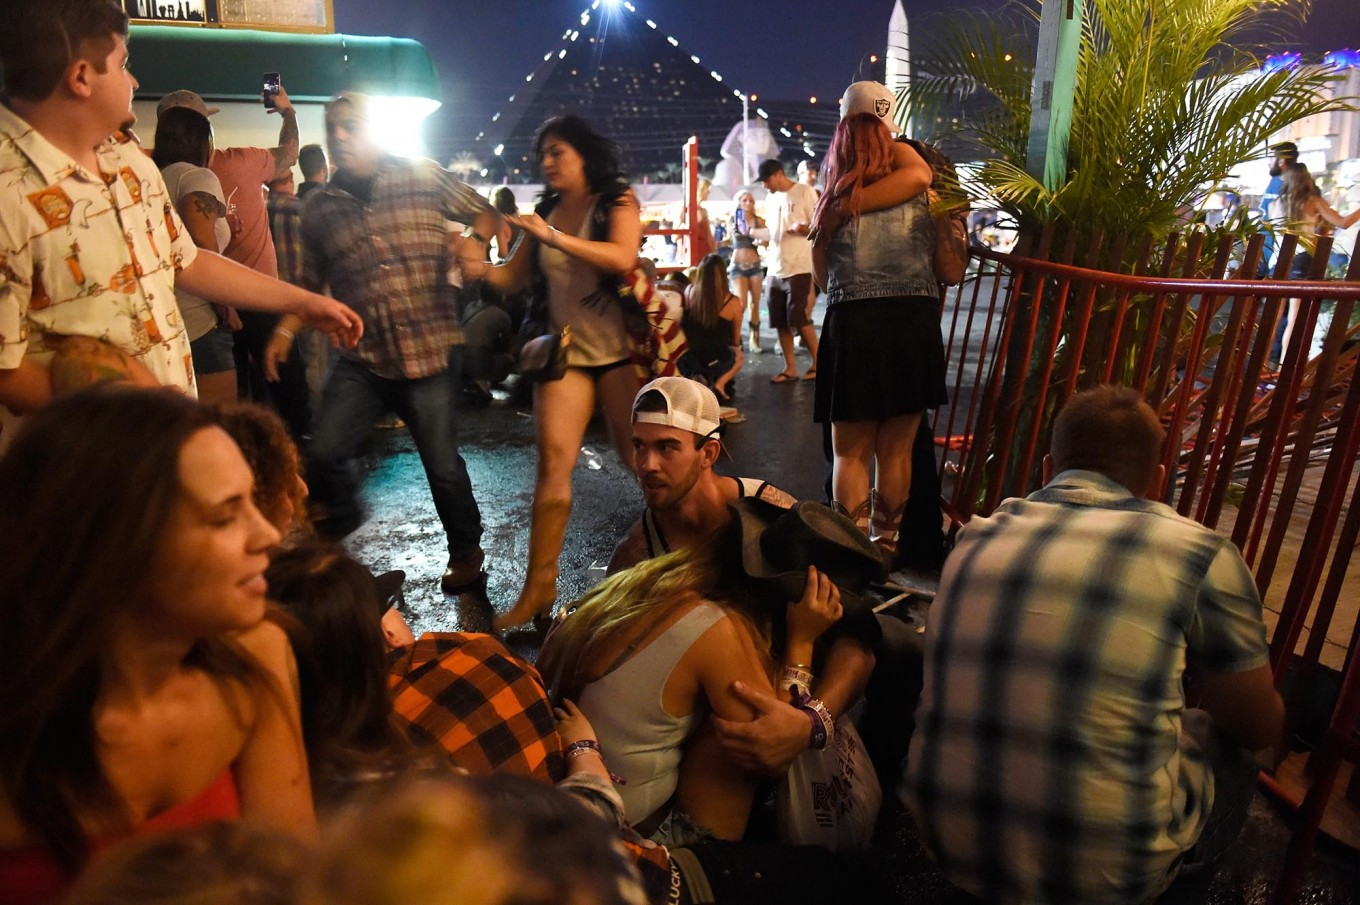 People run for cover at the Route 91 Harvest country music festival after apparent gun fire was heard on October 1, 2017 in Las Vegas, Nevada. There are reports of an active shooter around the Mandalay Bay Resort and Casino. AFP/Getty Images/David Becker